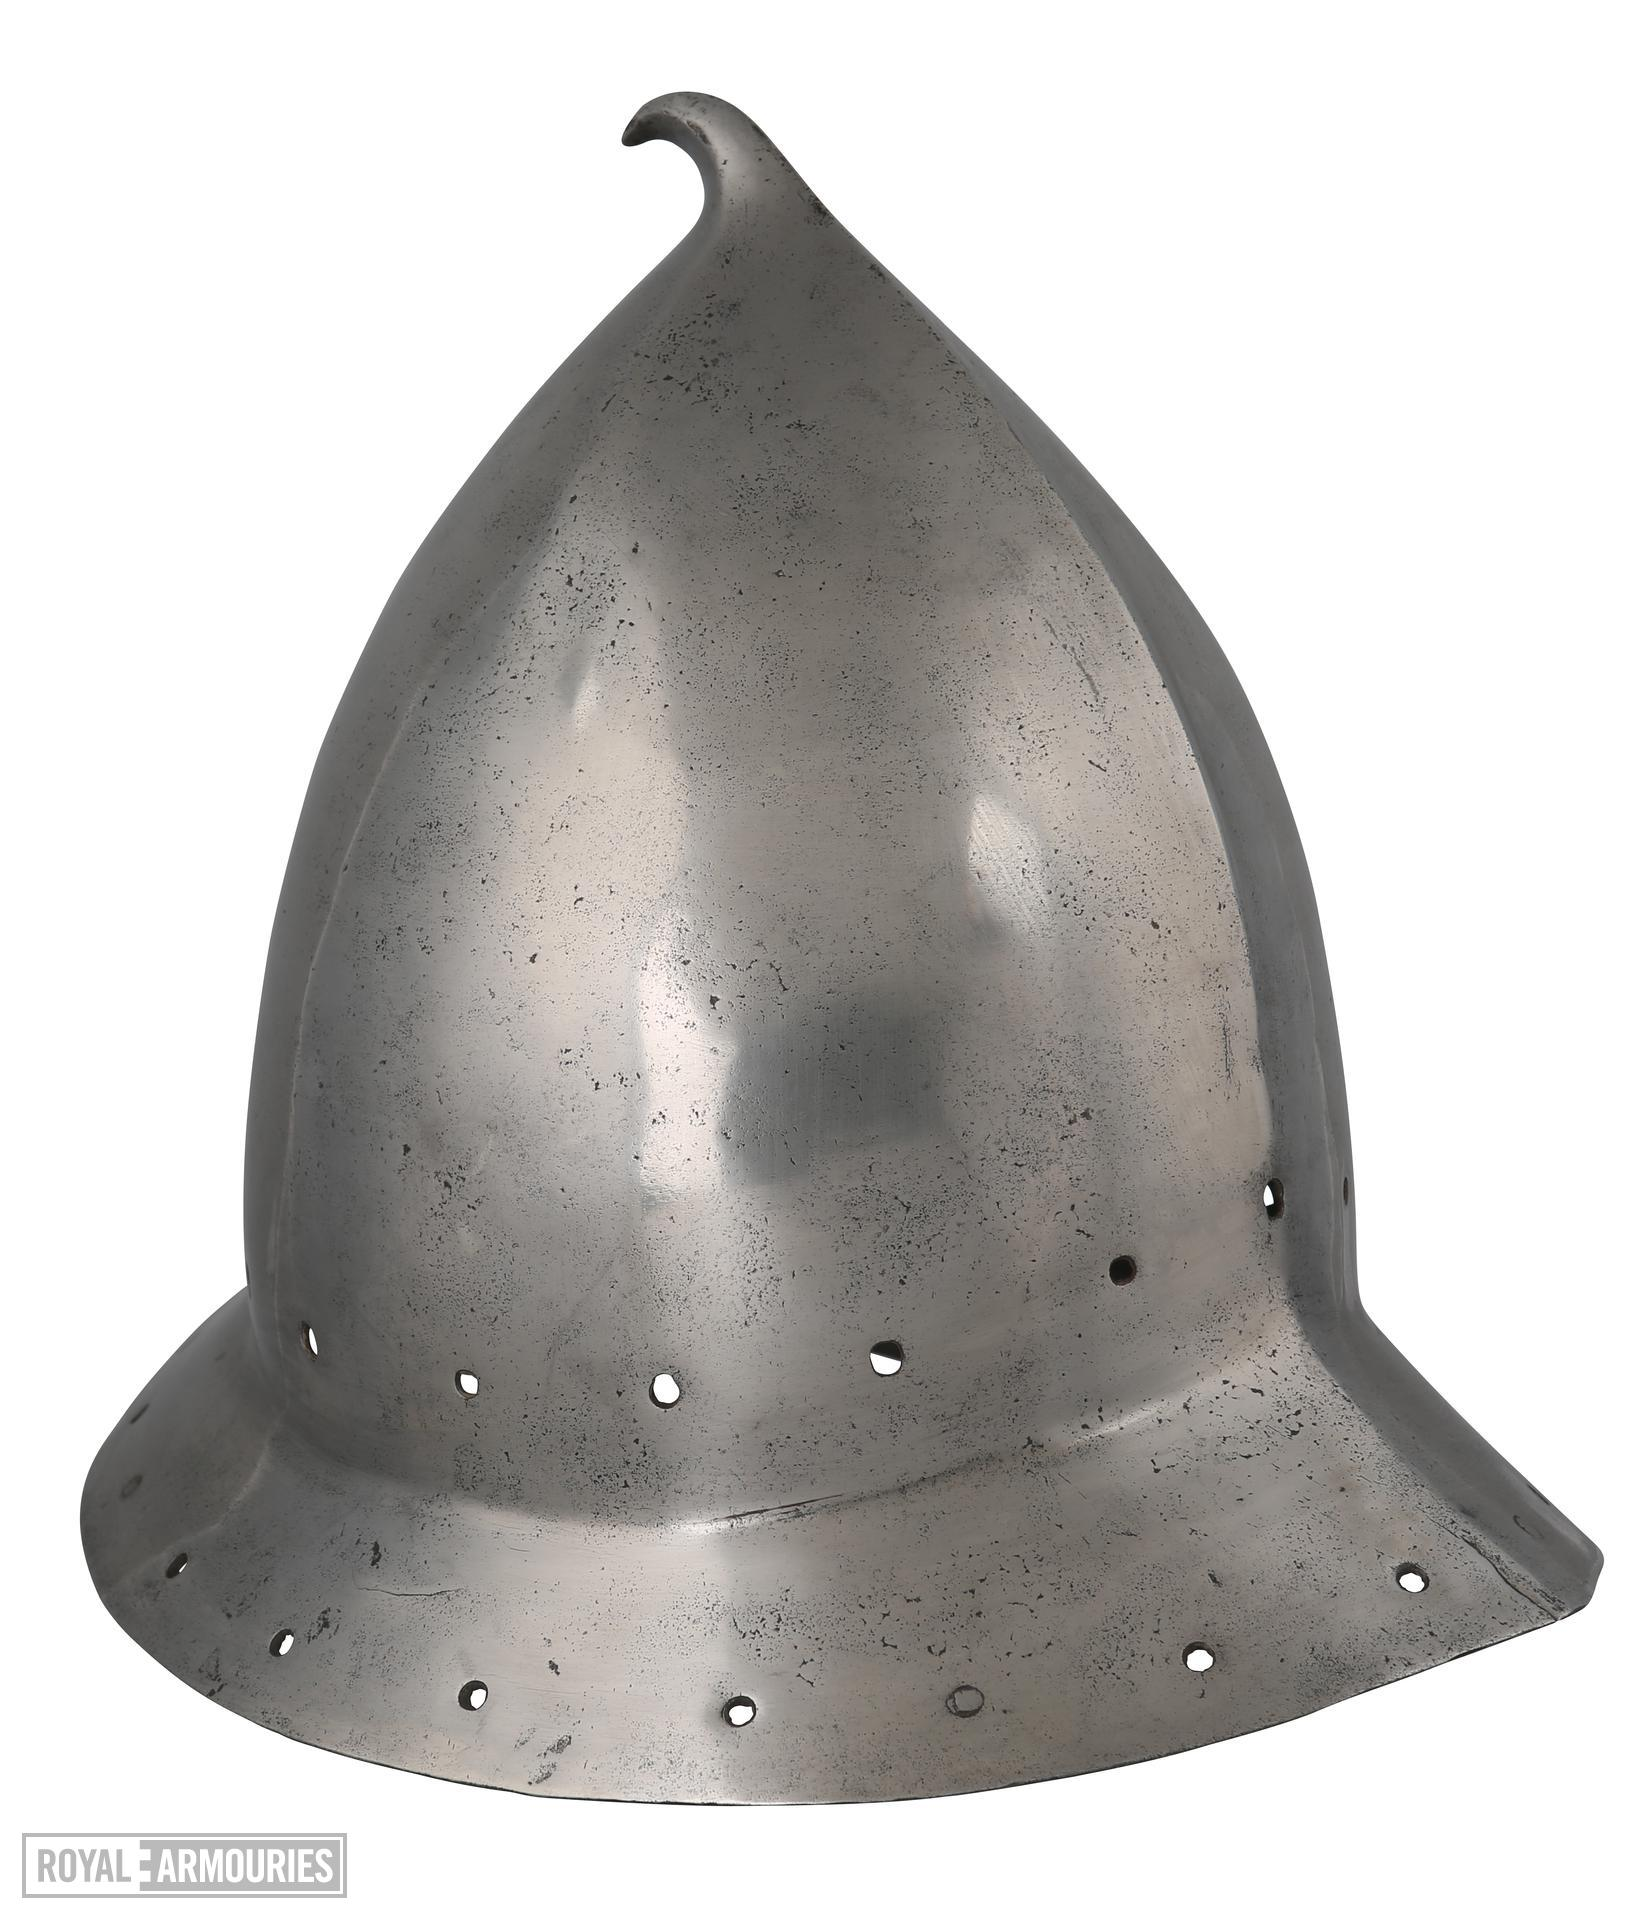 Capacete (helmet), Spanish, or Italian for the Spanish market, about 1470